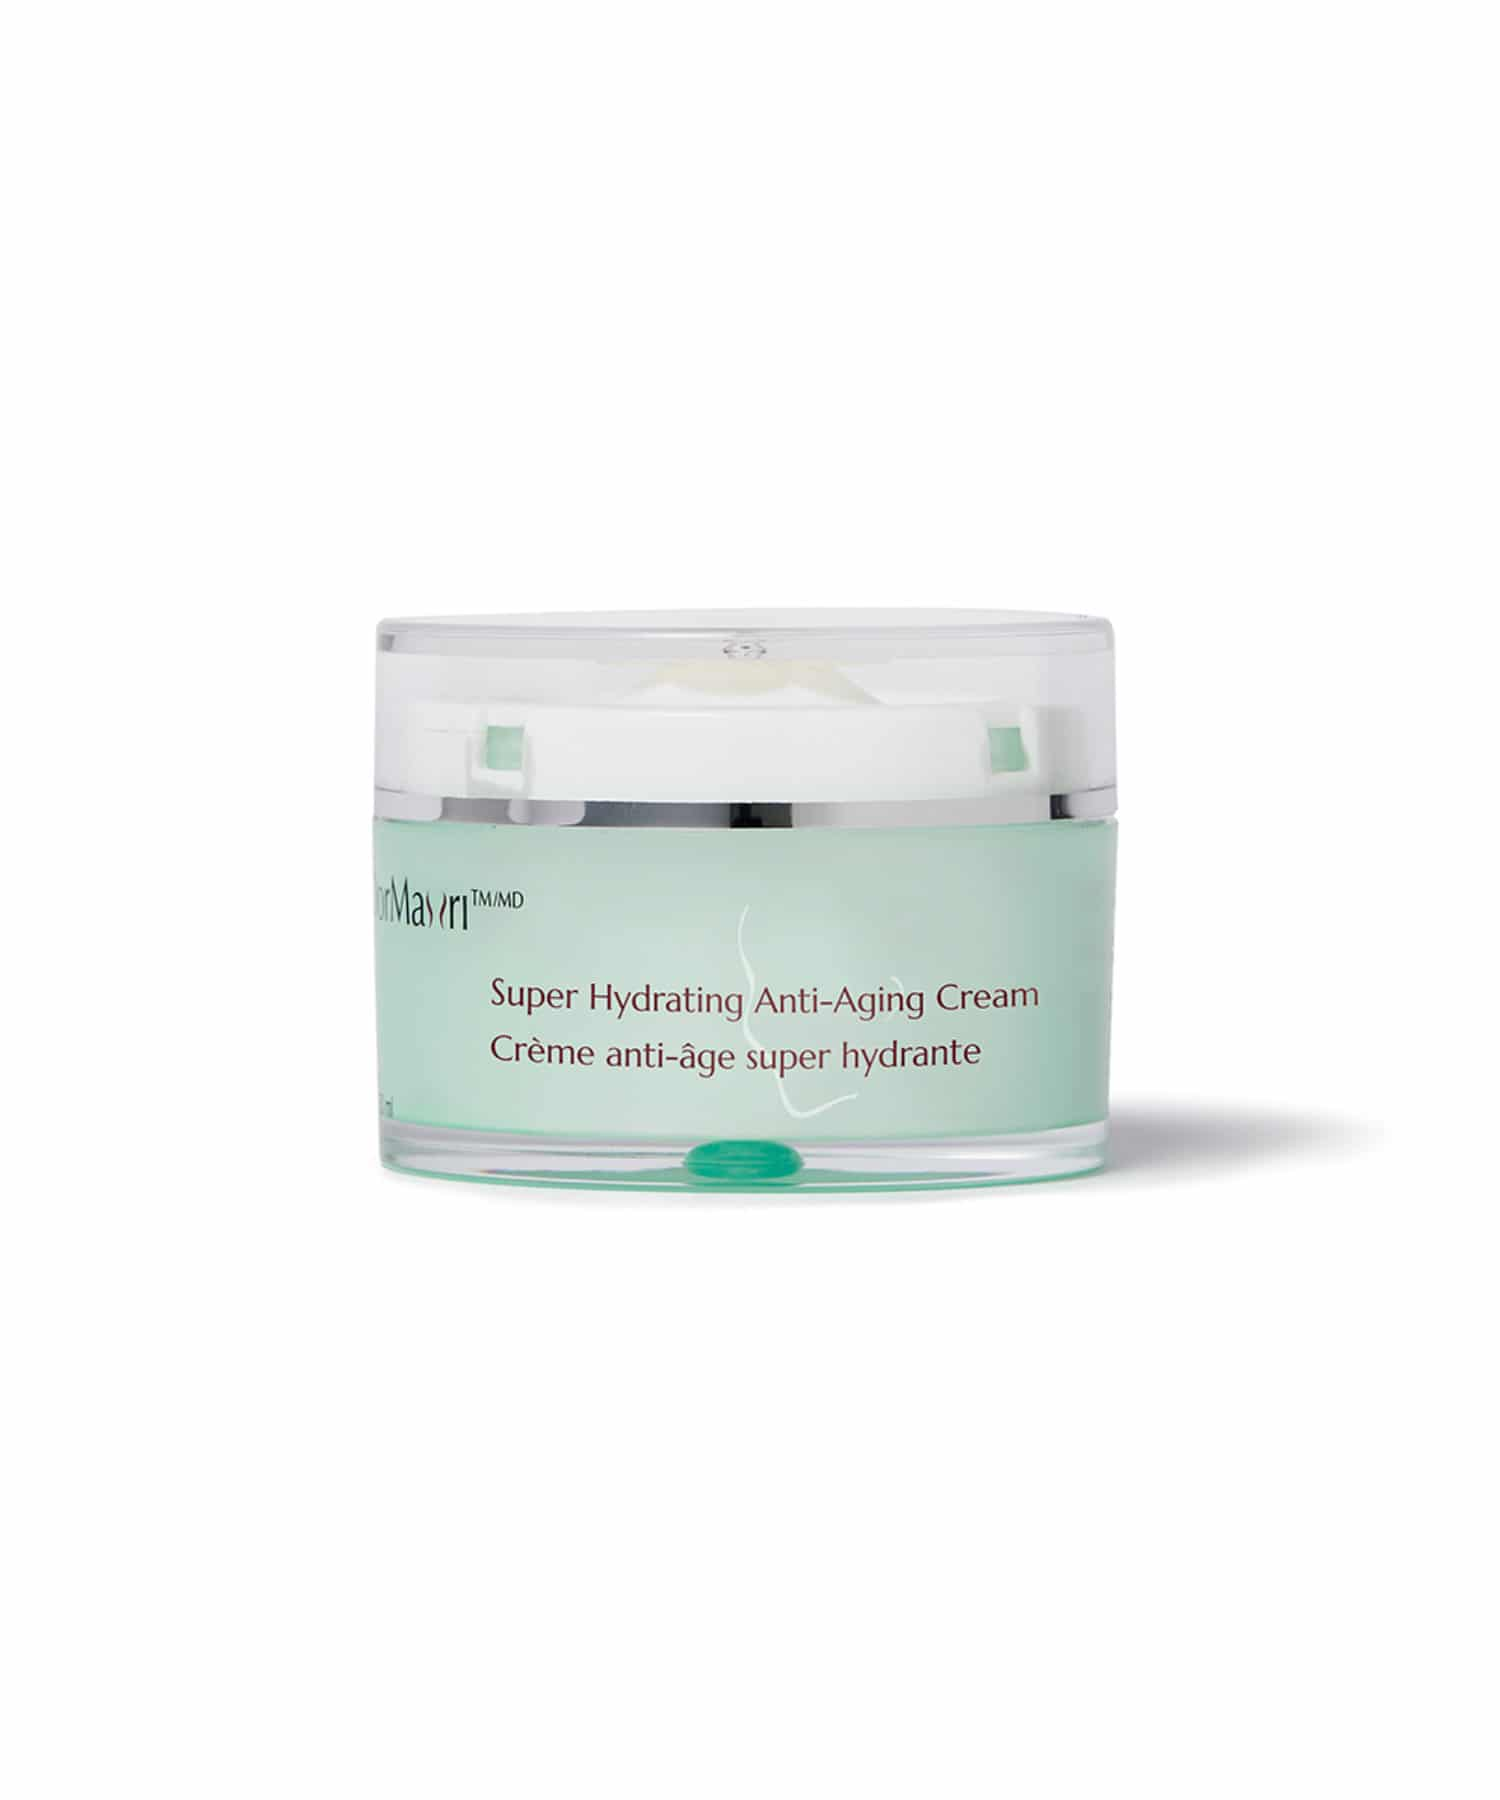 DorMauri - Super Hydrating Anti-Aging Cream